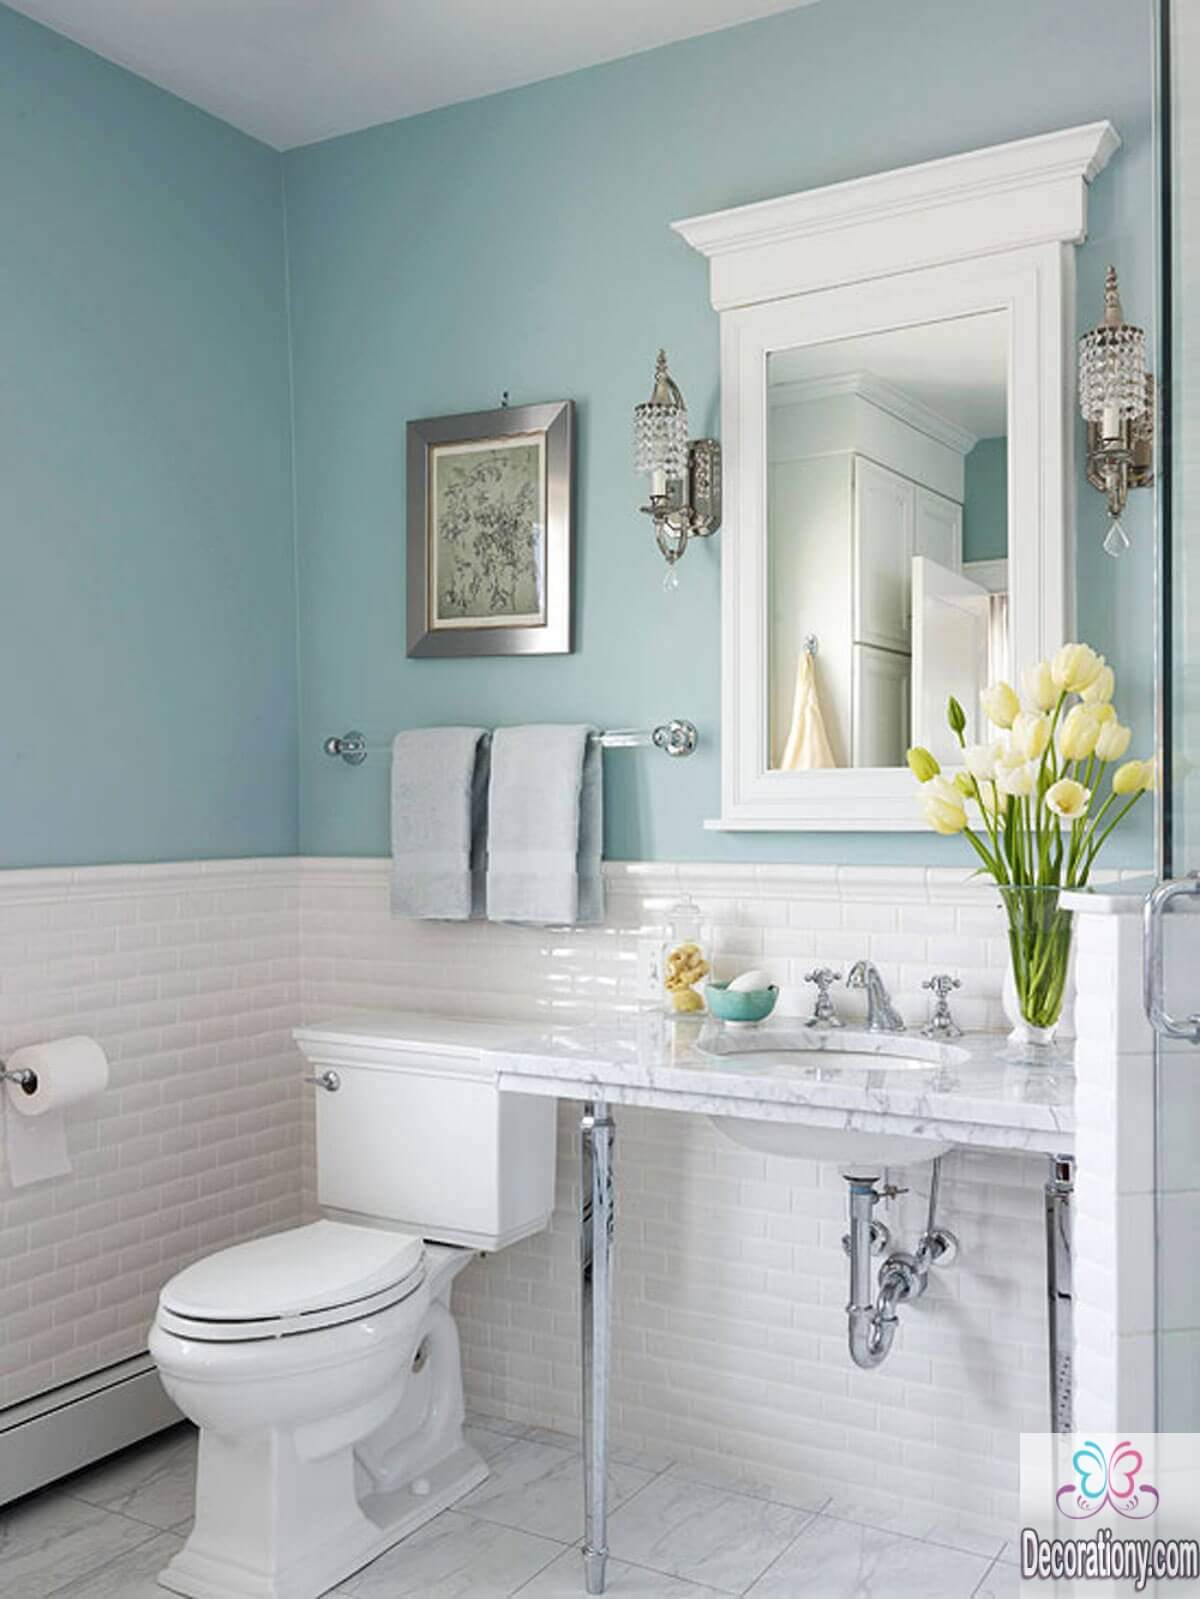 10 affordable colors for small bathrooms decoration y for Interior colour designs